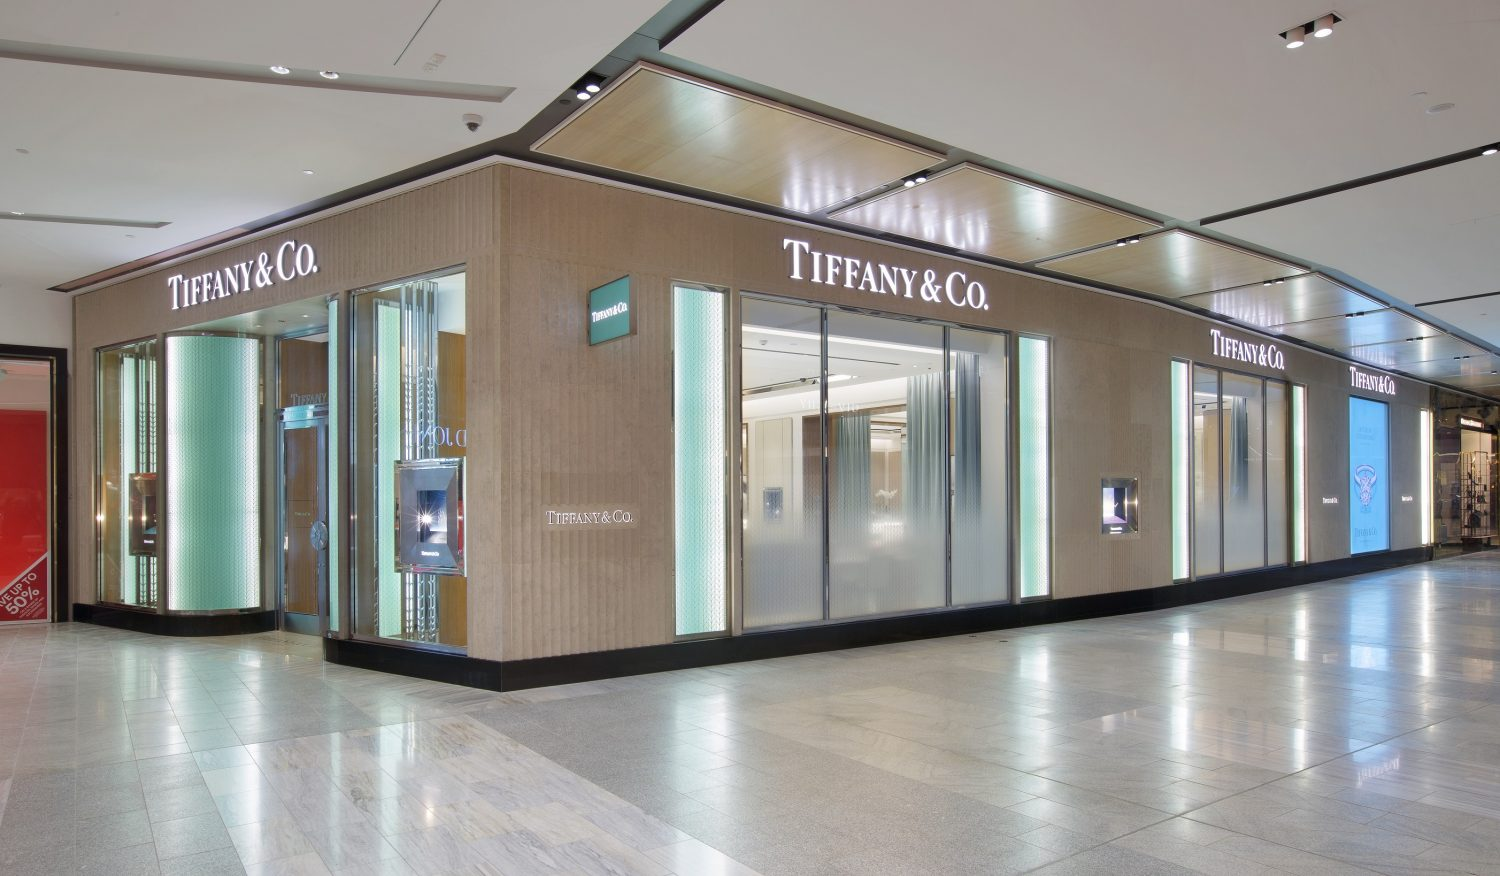 Tiffany & Co 3